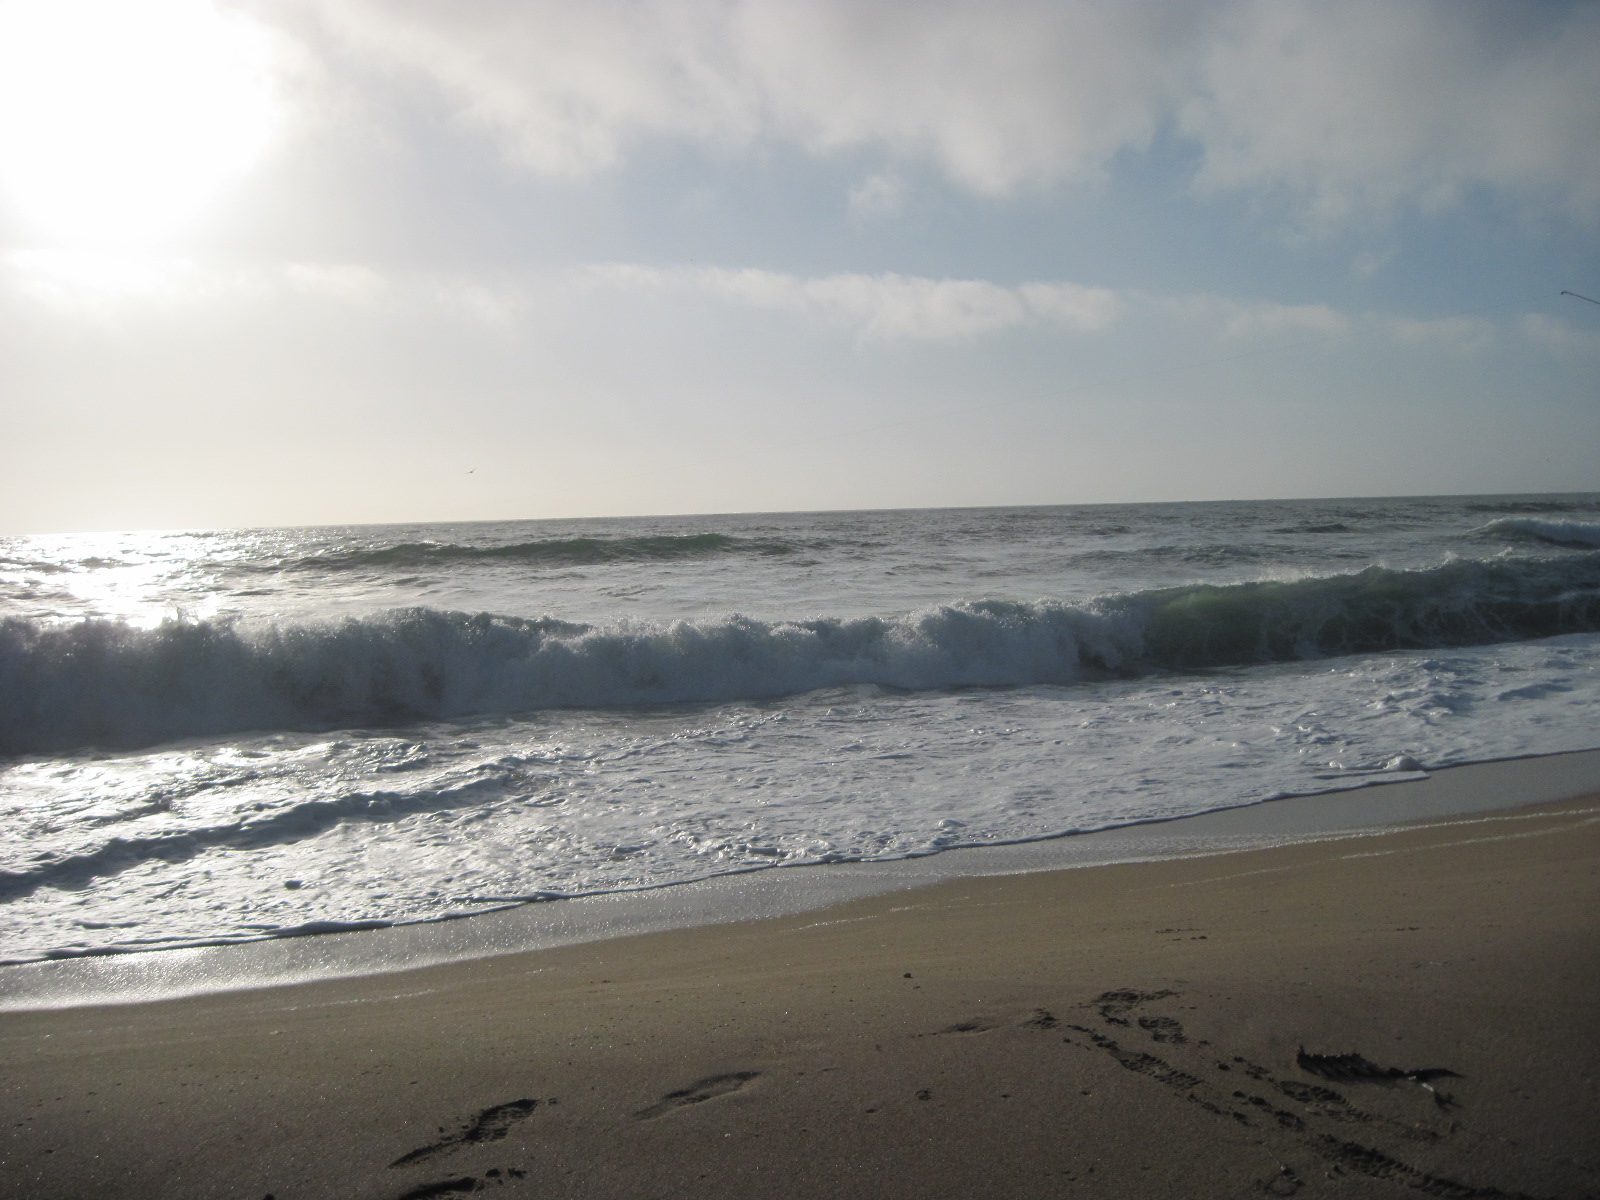 Thursday the Pacific was wild, crashing loudly on the shore.